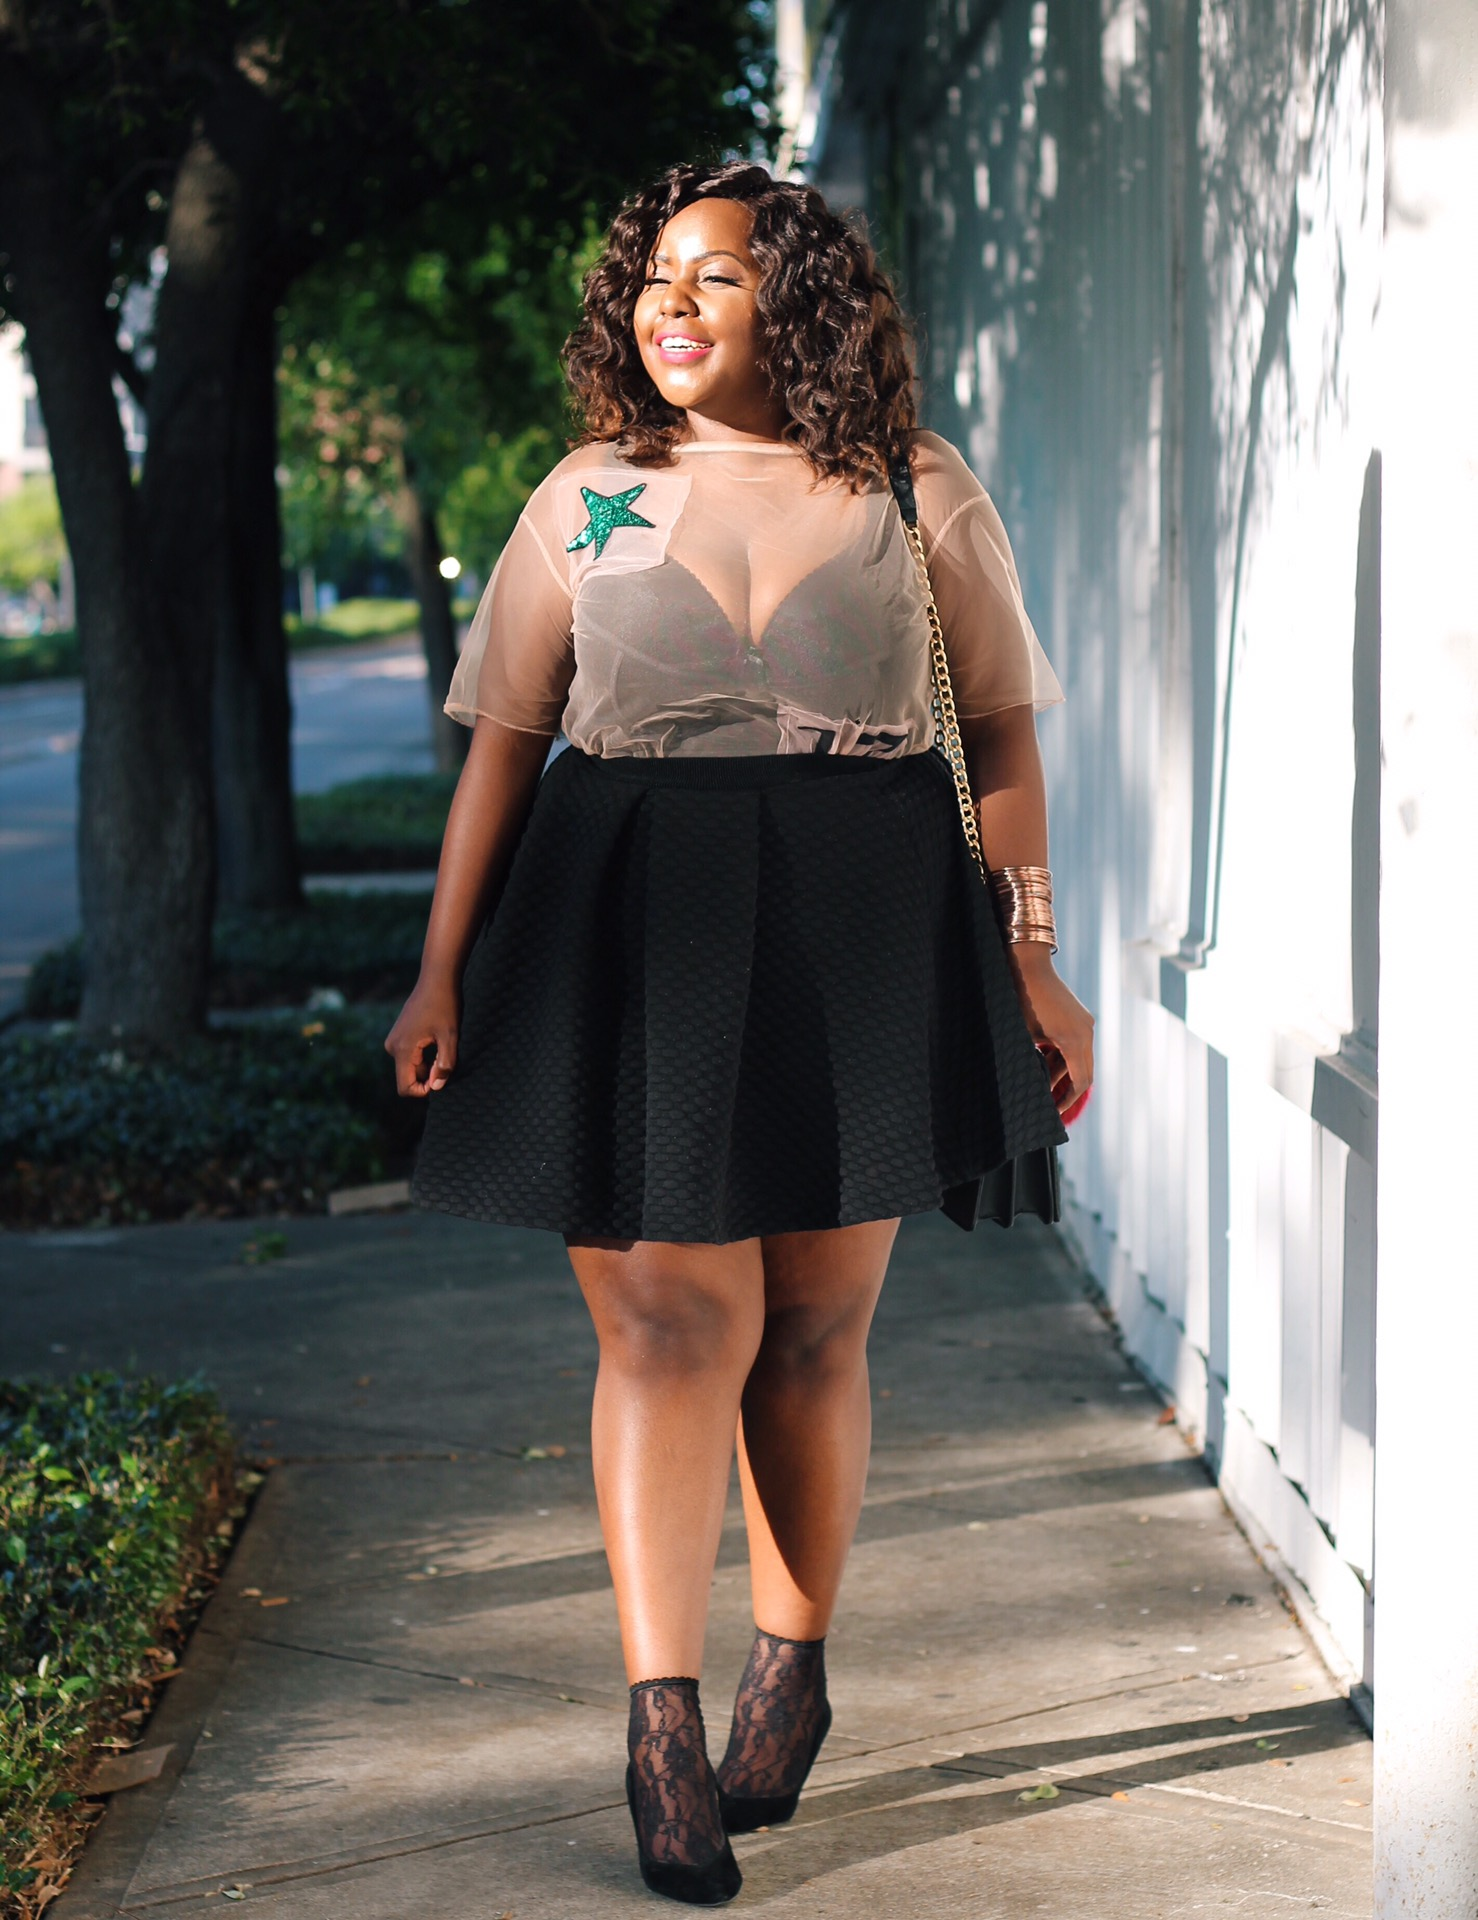 plus size black bloggers, clothes for curvy girls, curvy girl fashion clothing, plus blog, plus size fashion tips, plus size women blog, at fashion blog, plus size high fashion, curvy women fashion, plus blog, curvy girl fashion blog, style plus curves, plus size fashion instagram, curvy girl blog, bbw blog, plus size street fashion, plus size beauty blog, plus size fashion ideas, curvy girl summer outfits, plus size fashion magazine, plus fashion bloggers,